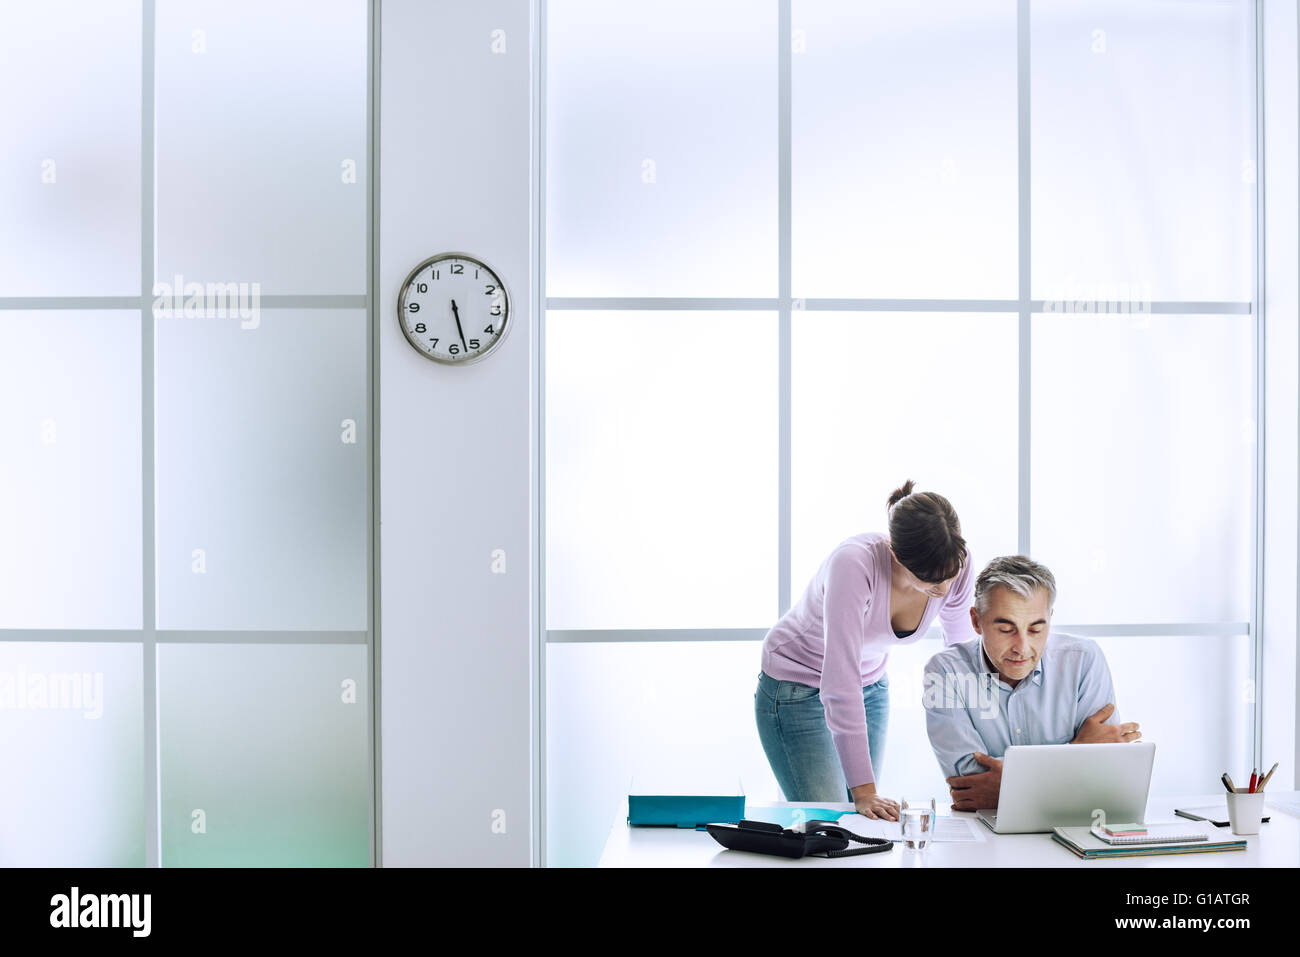 Executive working at office desk with his assistant, they are using a laptop and connecting to internet - Stock Image